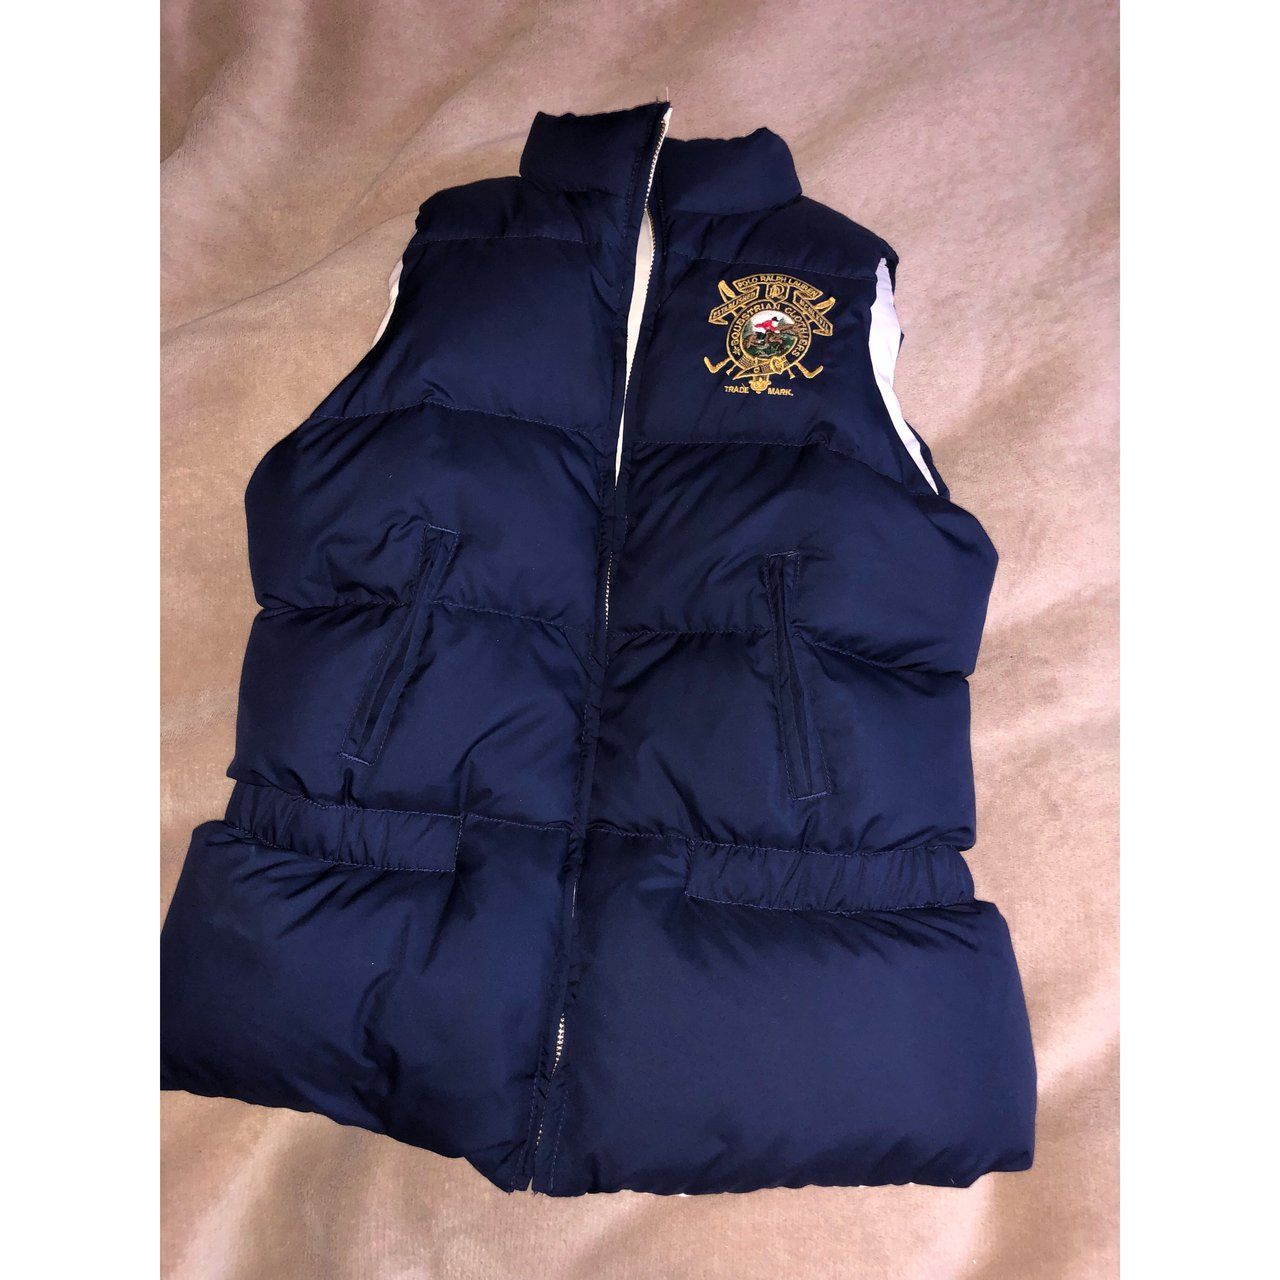 df96057812 Ralph Lauren bodywarmer gilet gillet jacket coat Absolutely perfect  condition Reversible-